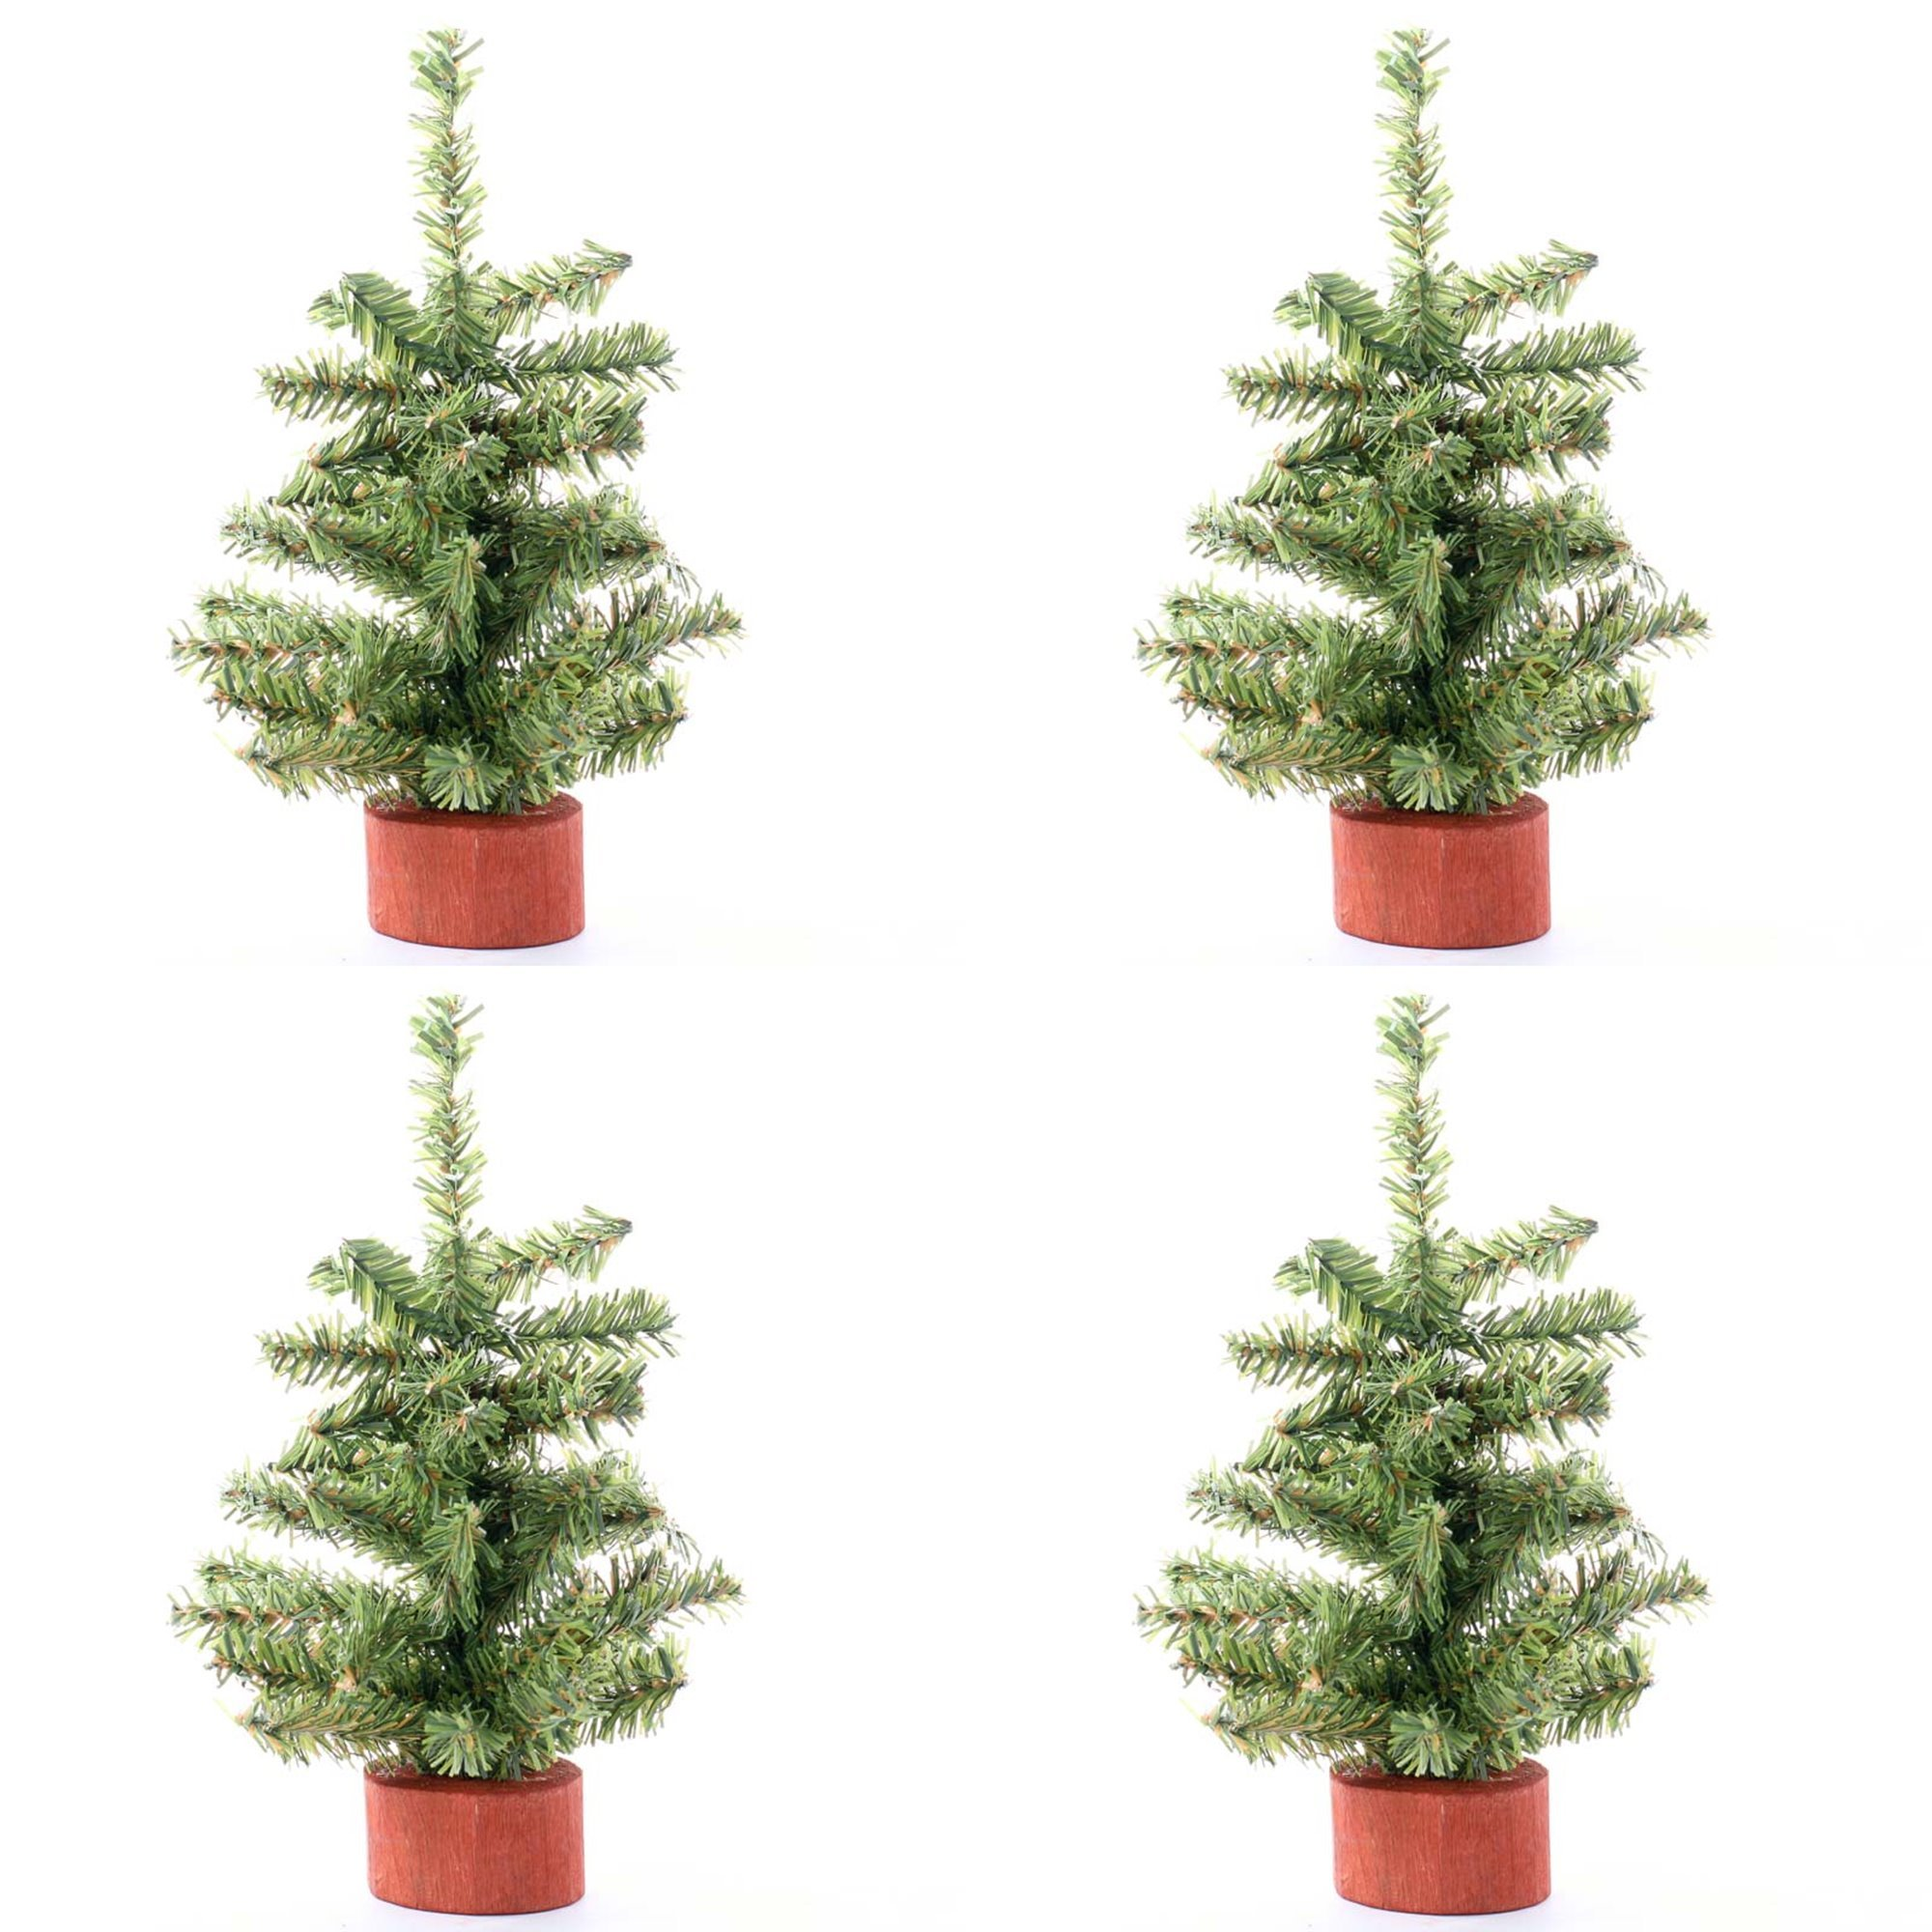 8'' Mini Artificial Pine Trees with Real Wood Base - Package of 4 Trees